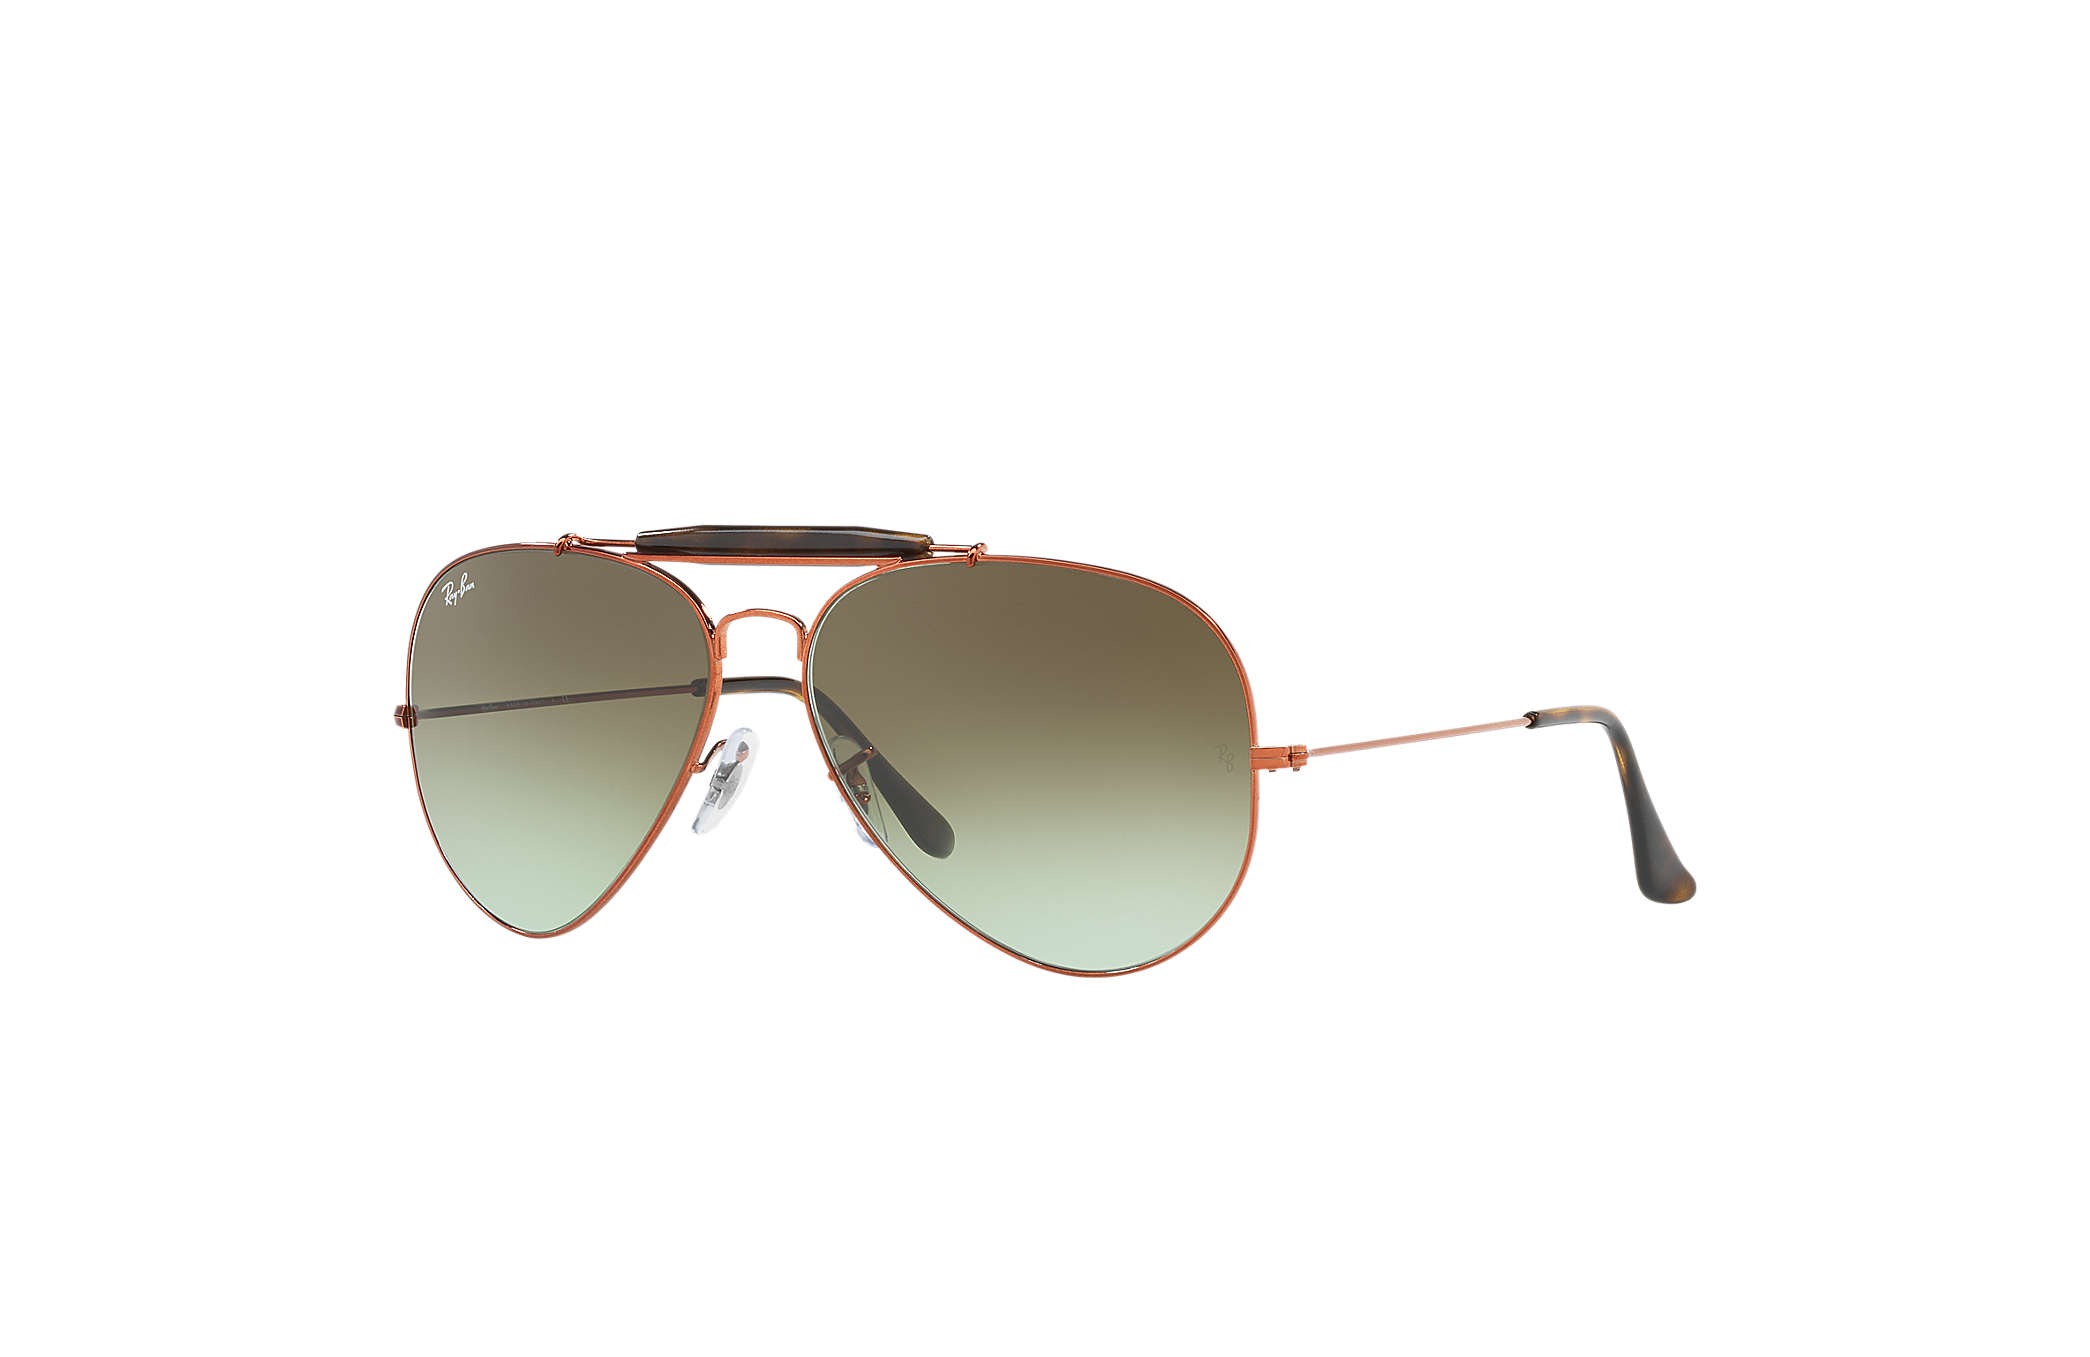 Ray Ban Outdoorsman II RB 3029 9002A6 CiQw4TZqf